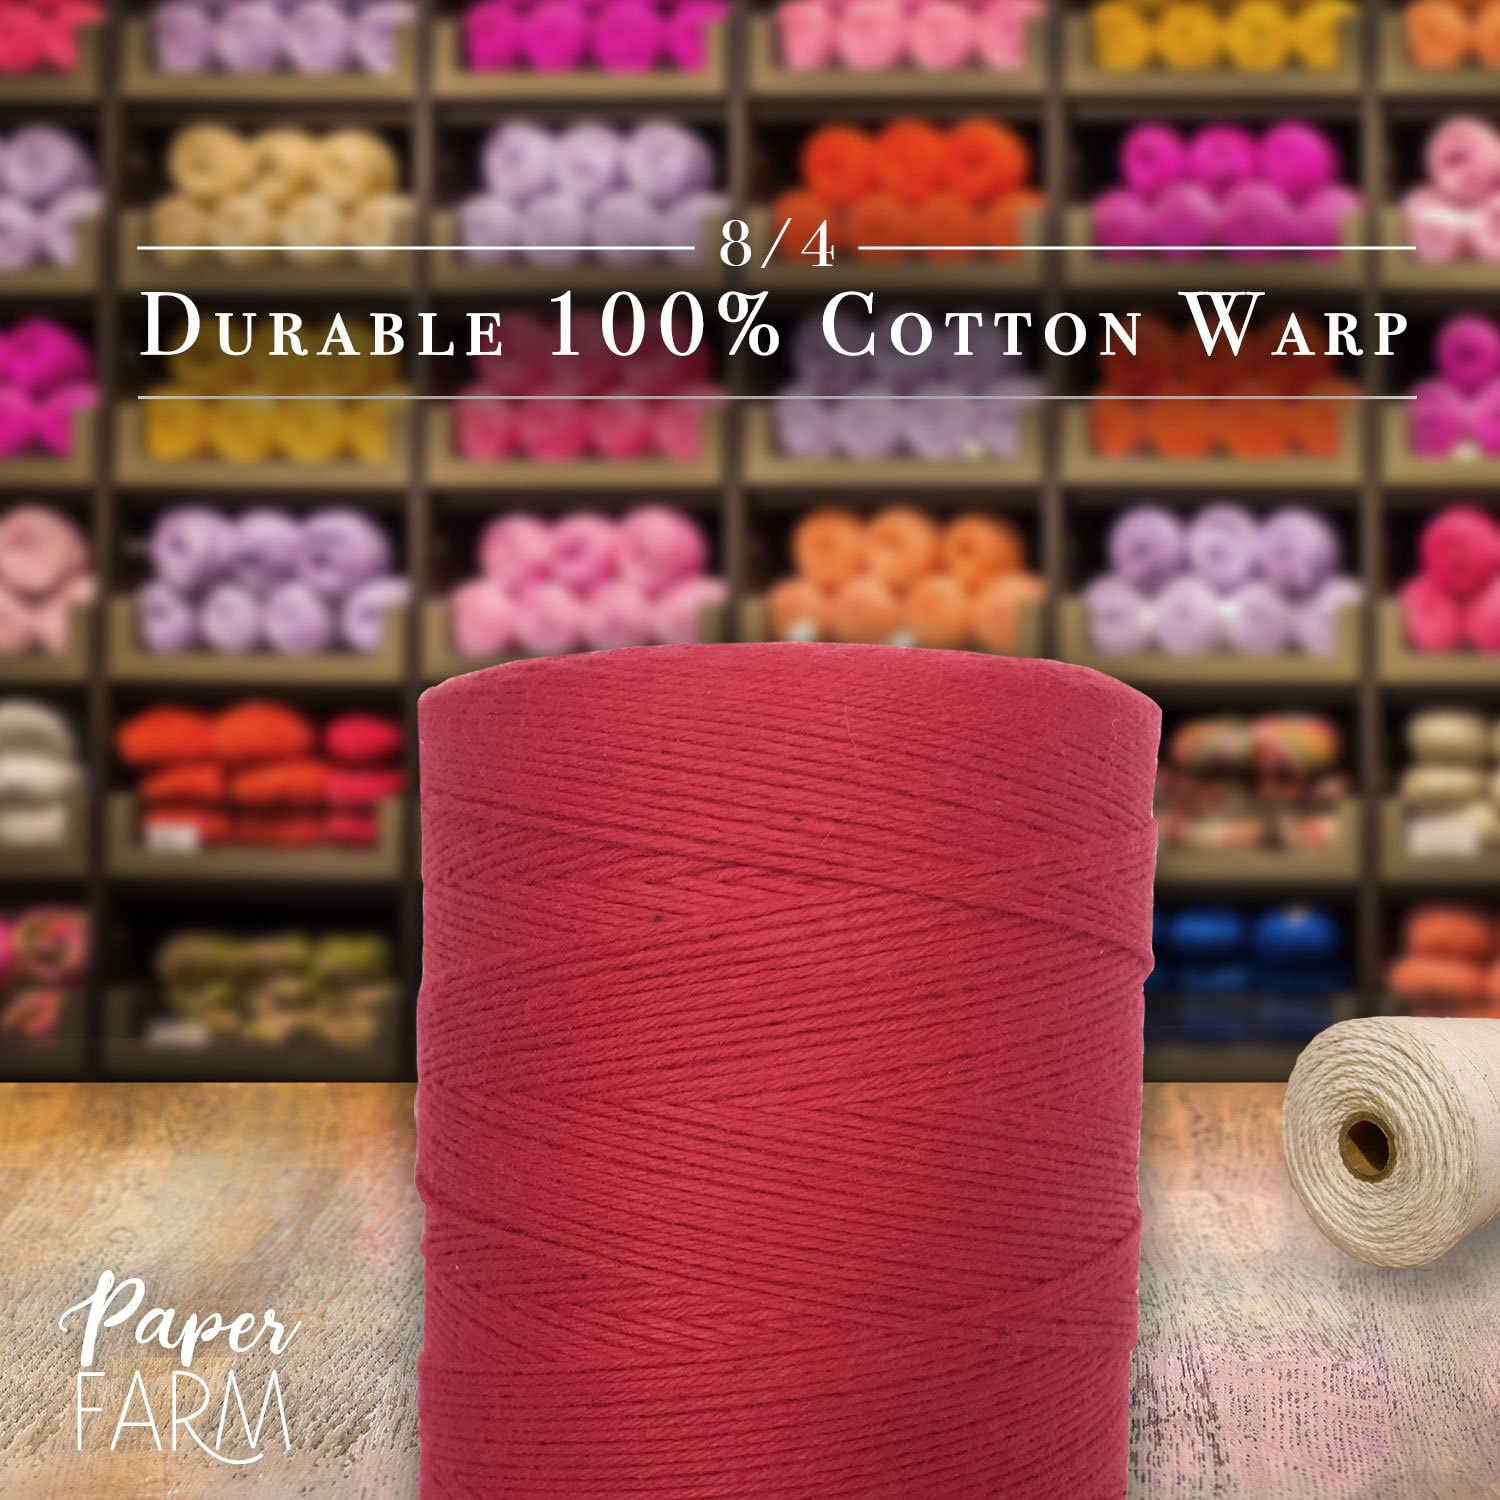 Warping Thread for Any Loom Rug Green 8//4 Warp Yarn 800 Yards Perfect for Weaving: Carpet Blanket or Pattern Tapestry 100/% Cotton Loom Warp Thread